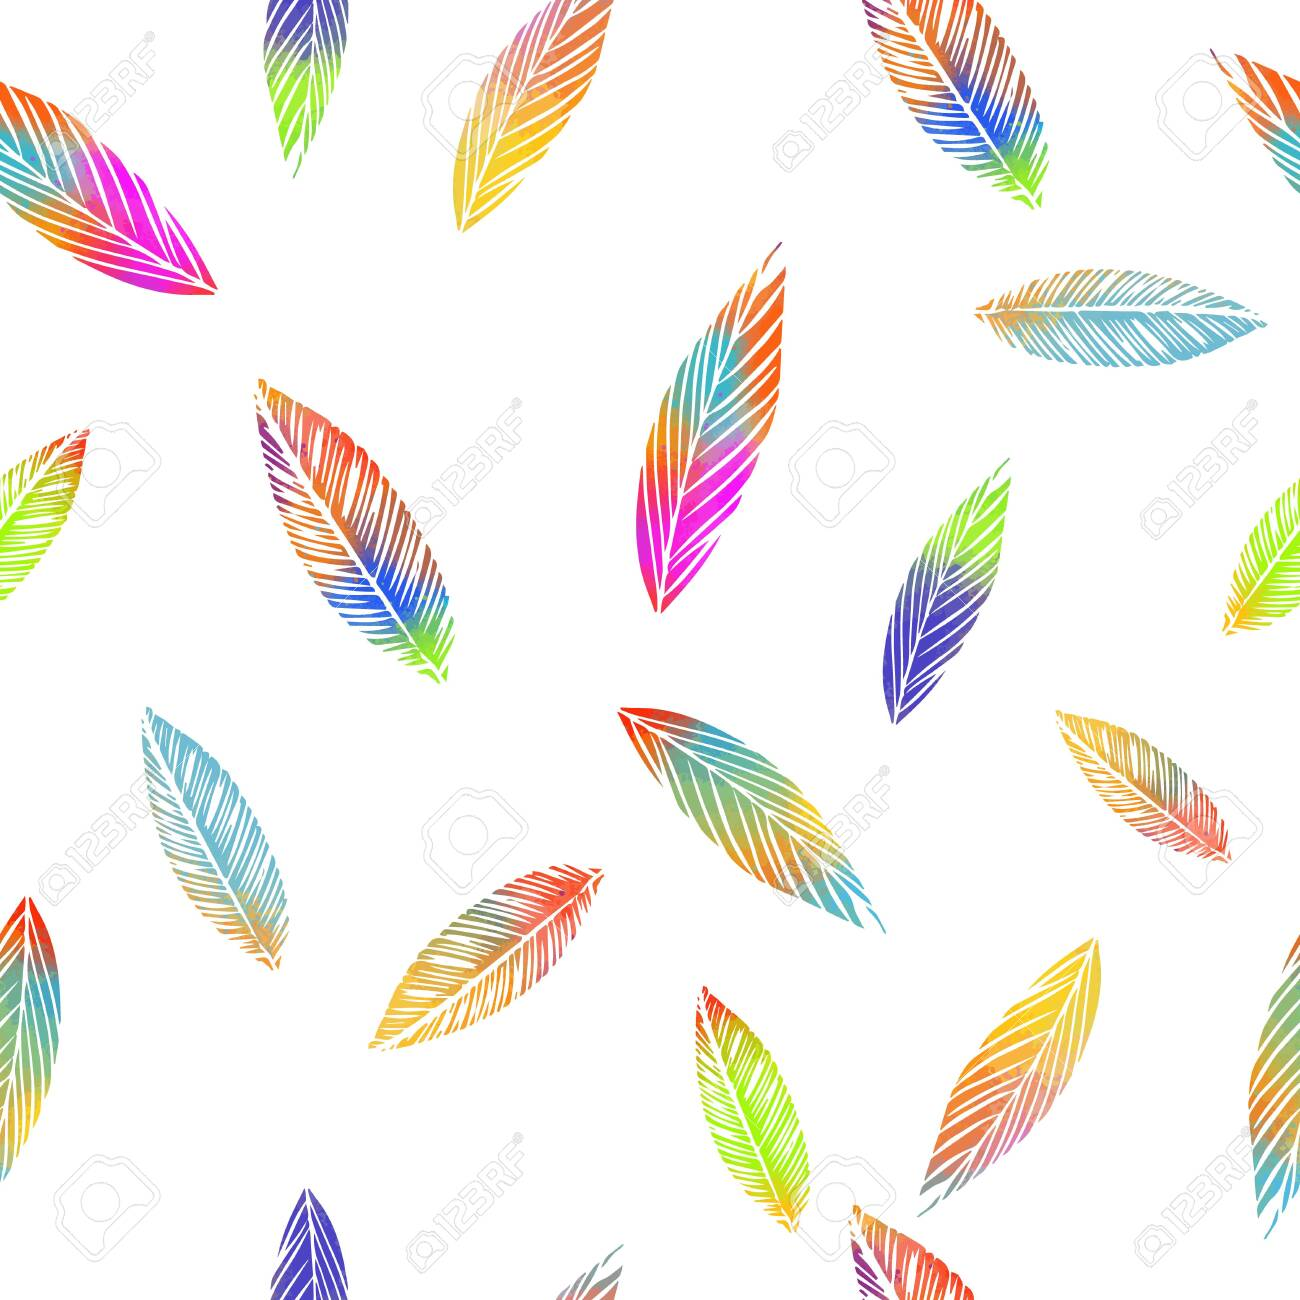 A seamless background with falling multicolored leaves. Vector illustration - 141632549